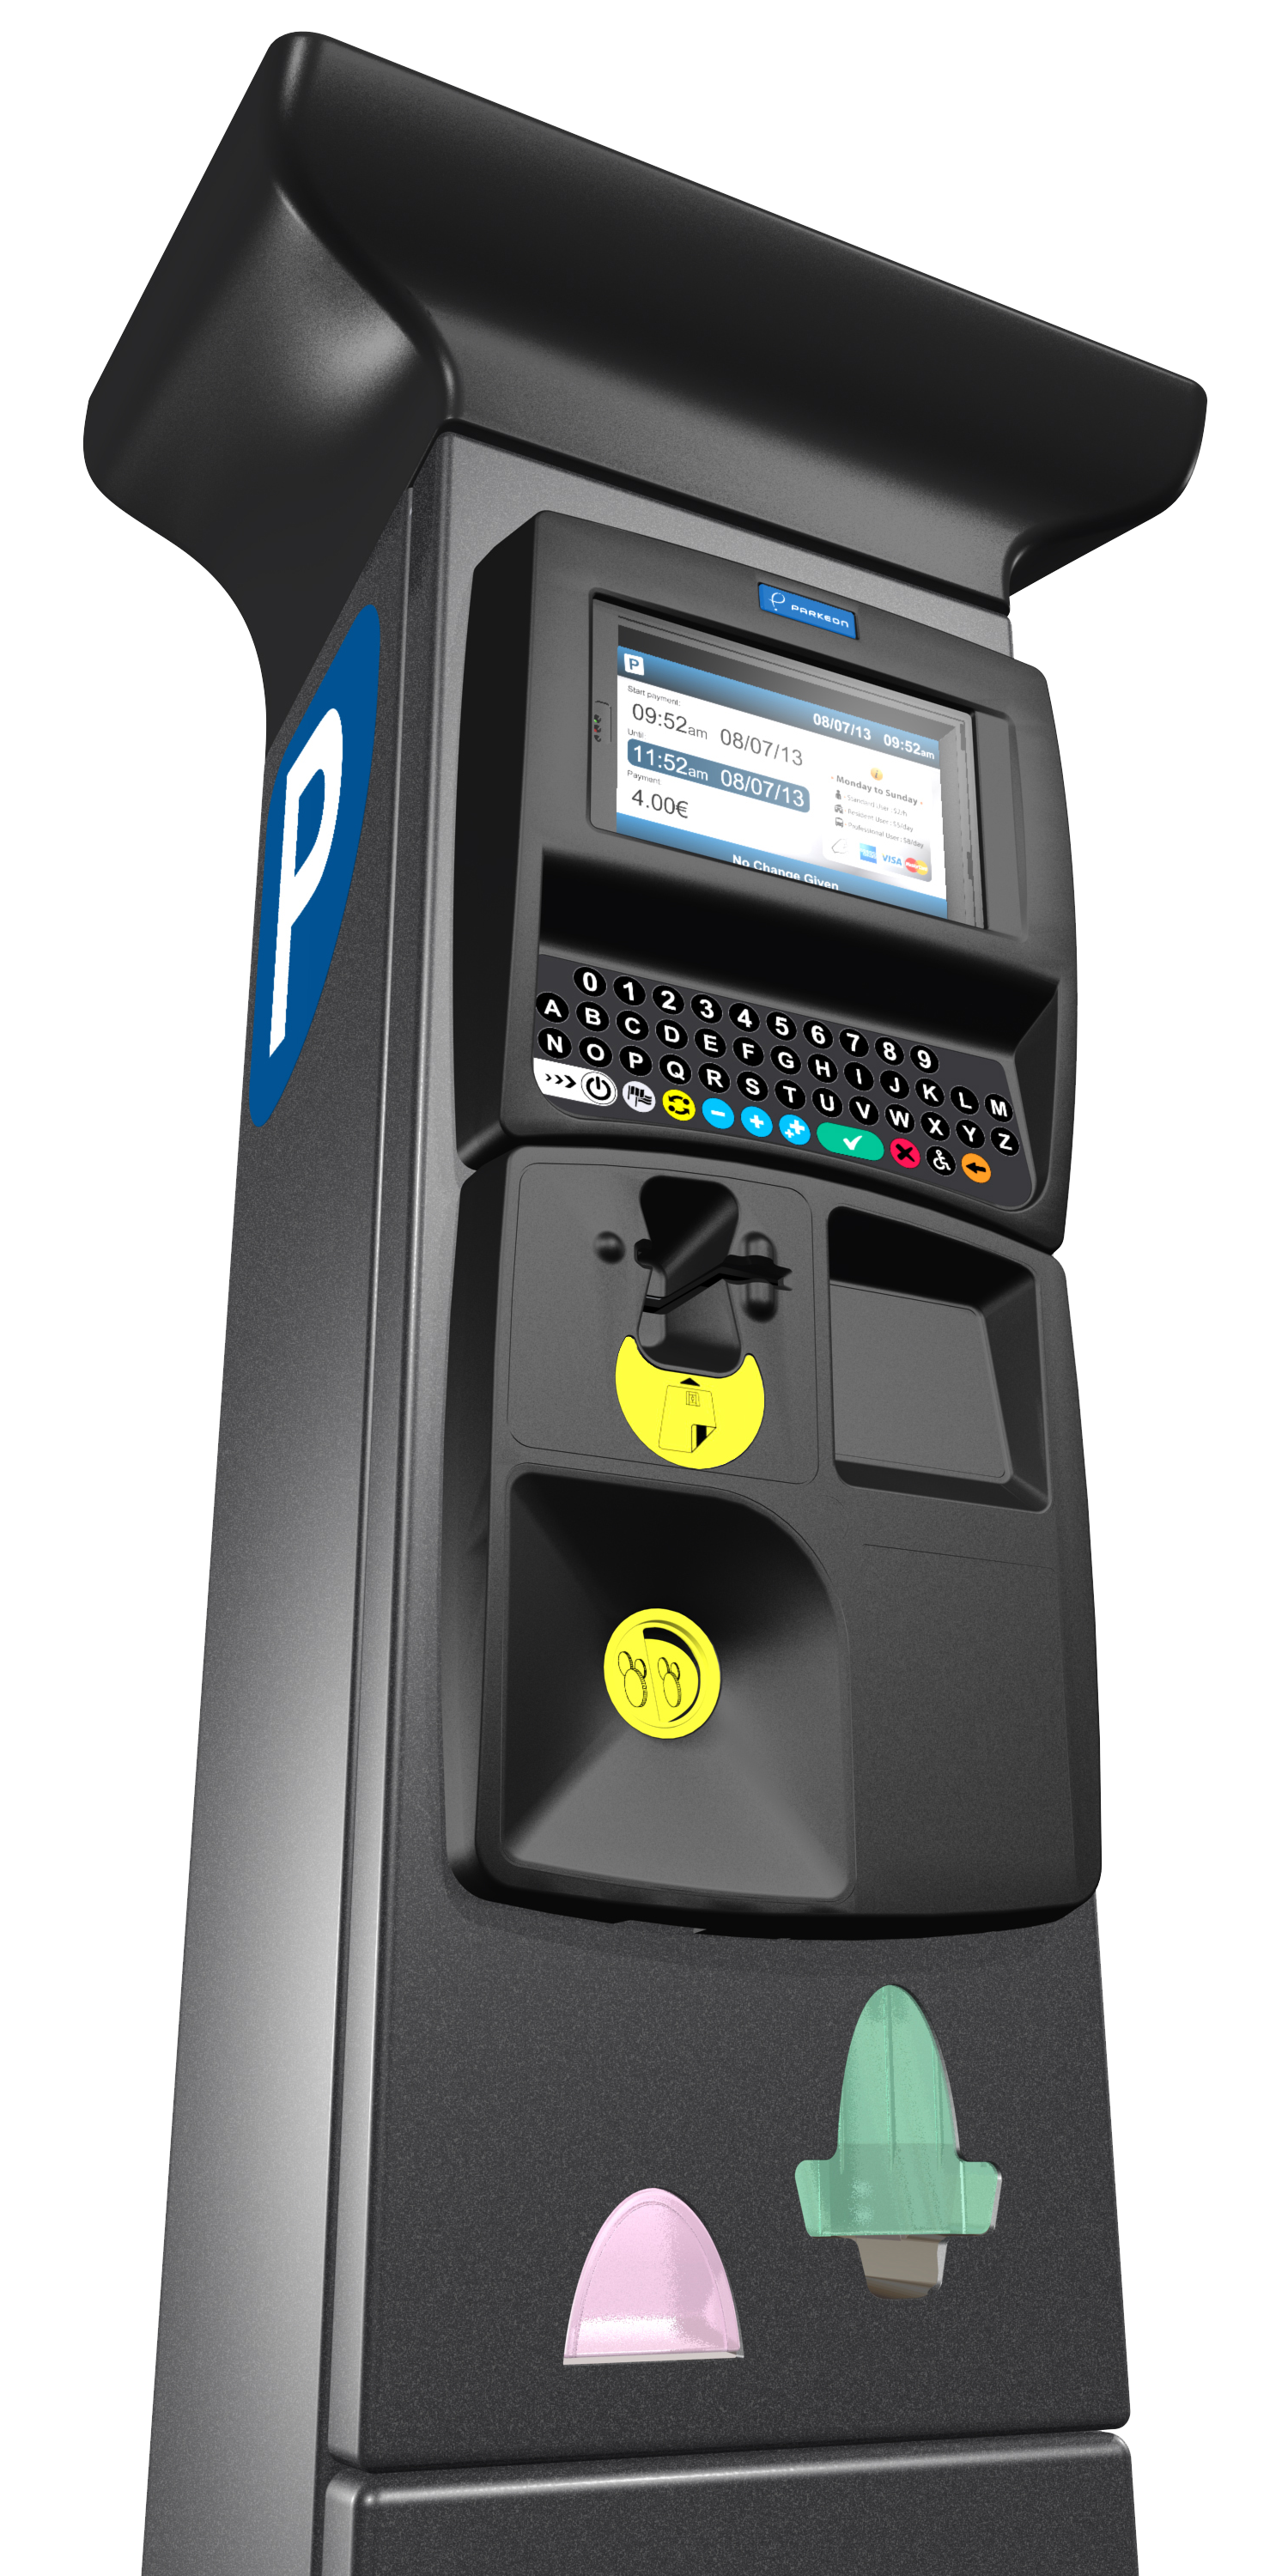 Pay parking machines